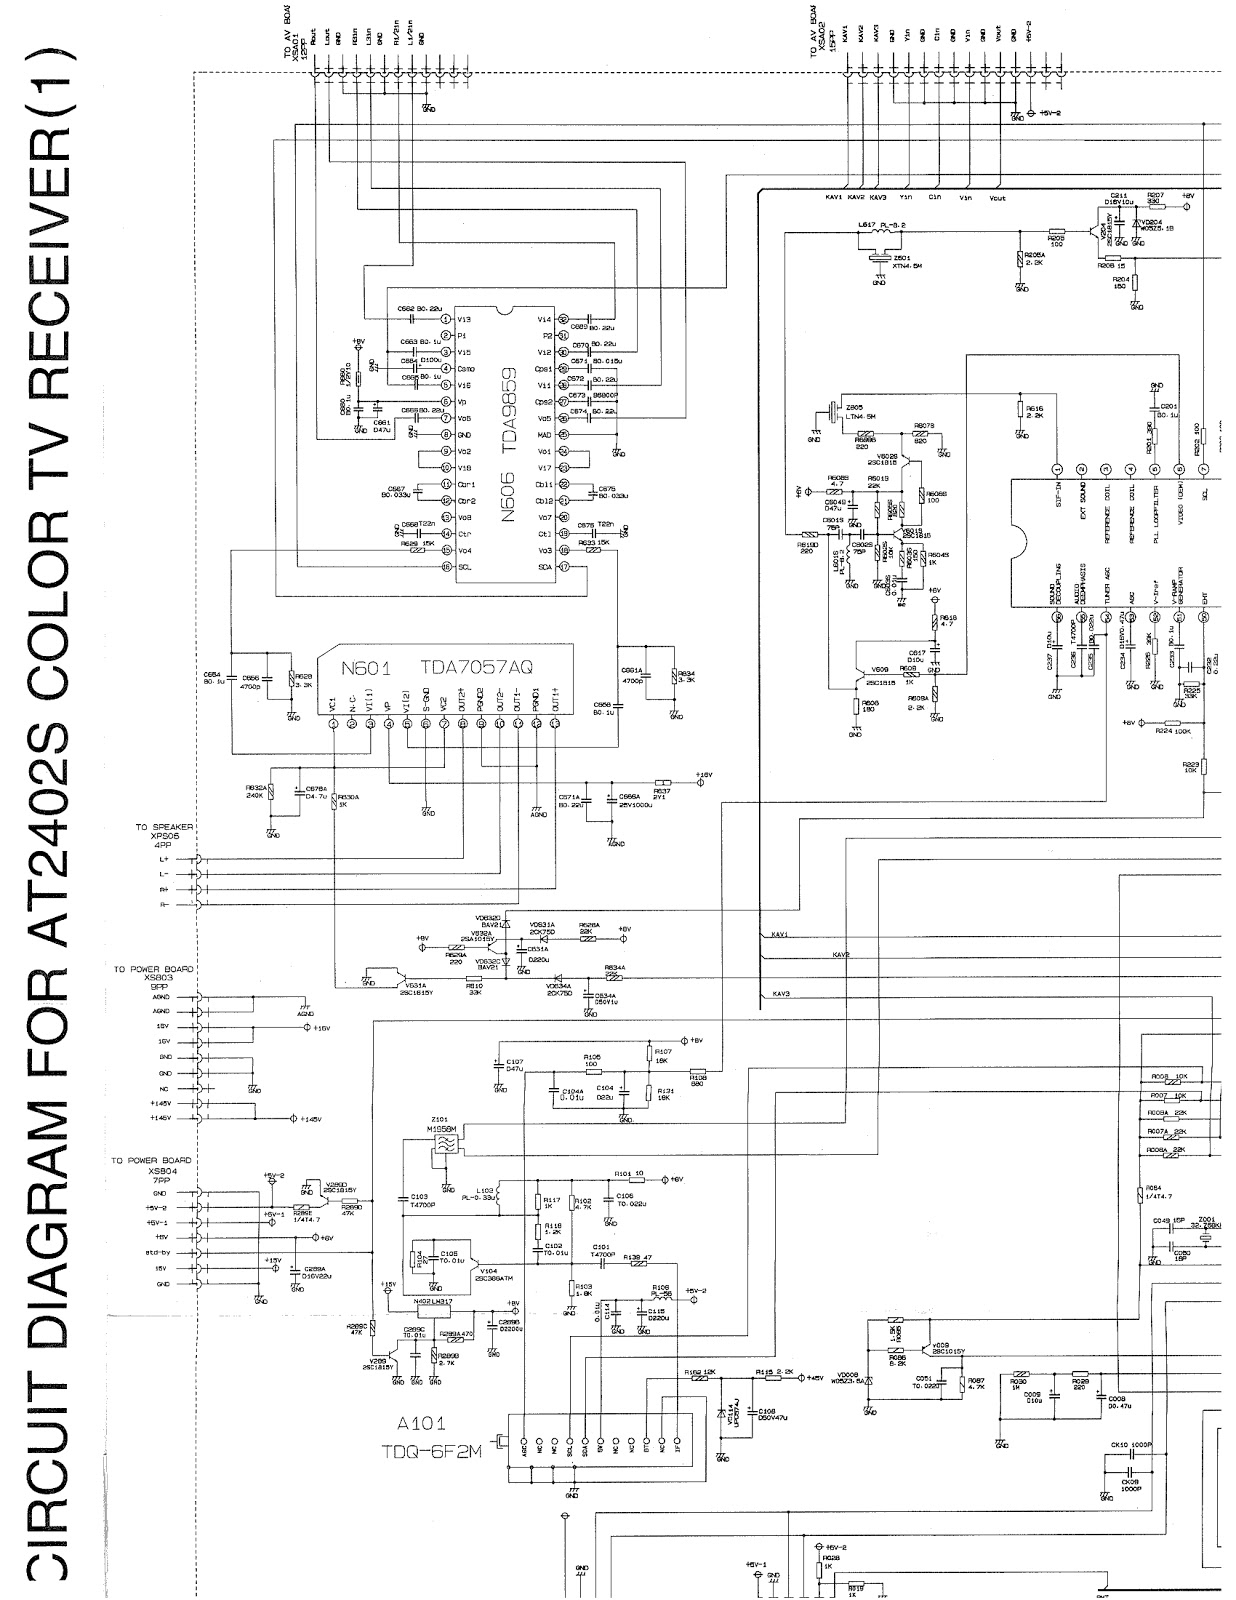 Snap Color Tv Circuit Diagram Pdf And Schematics Lg Cf 25h84 Power Supply Apex At 2402 Schematic Television Electro Help